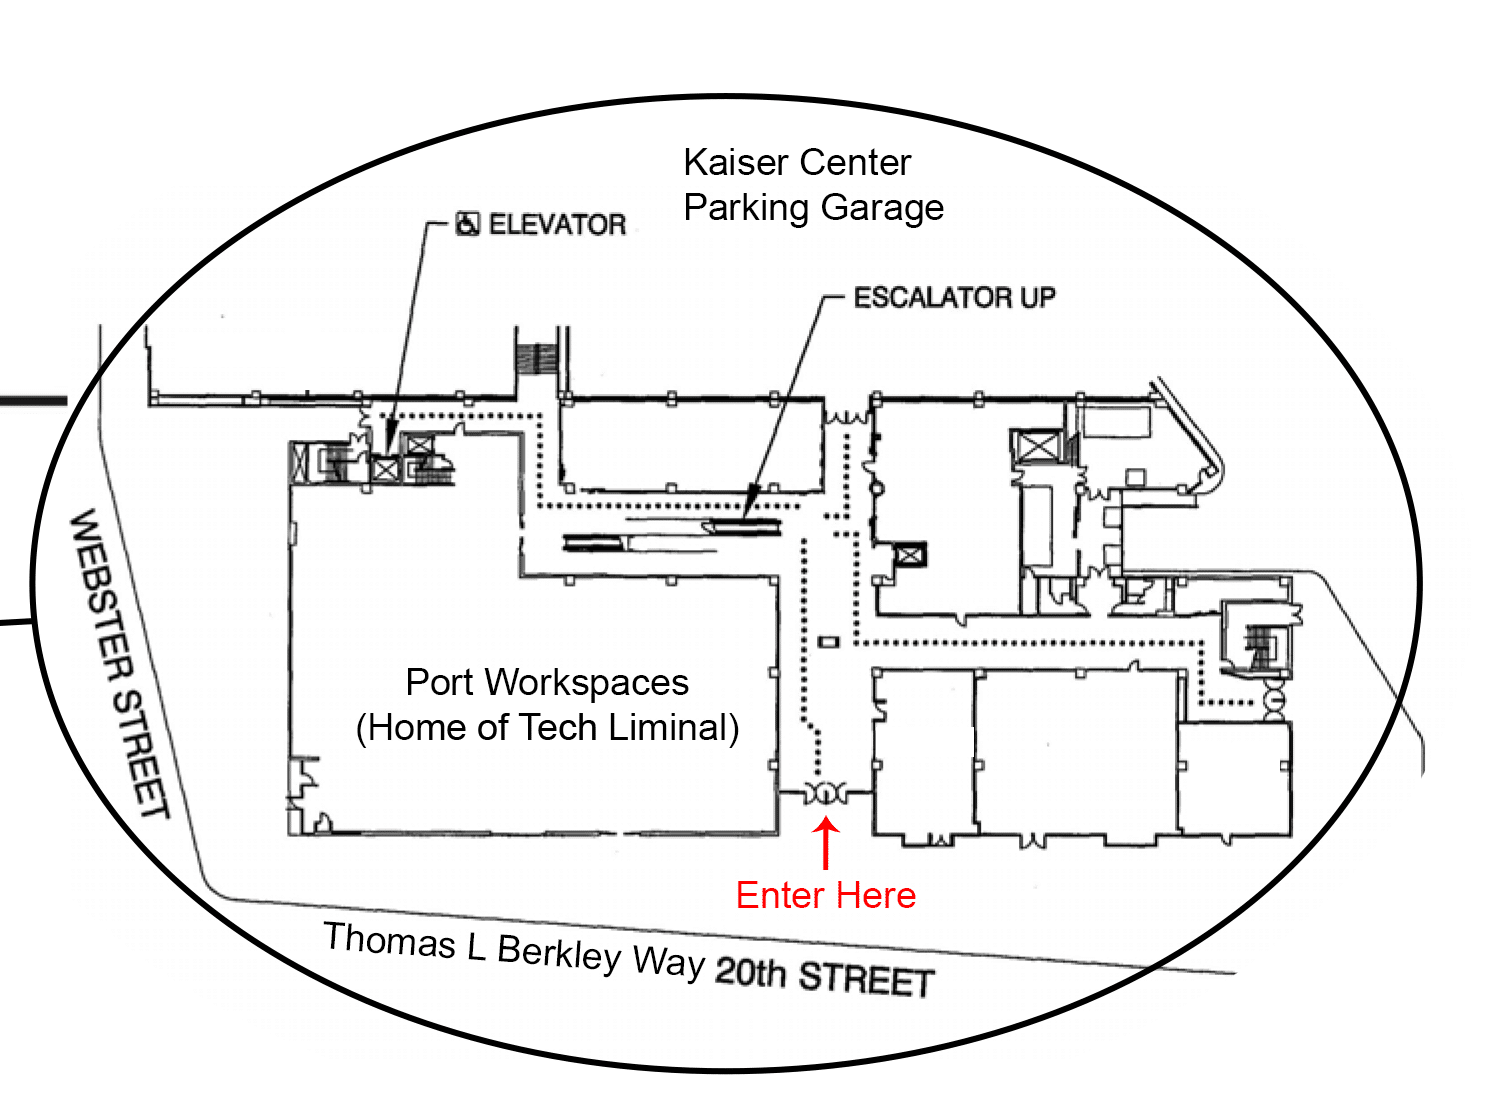 floor plan for Port Workspaces